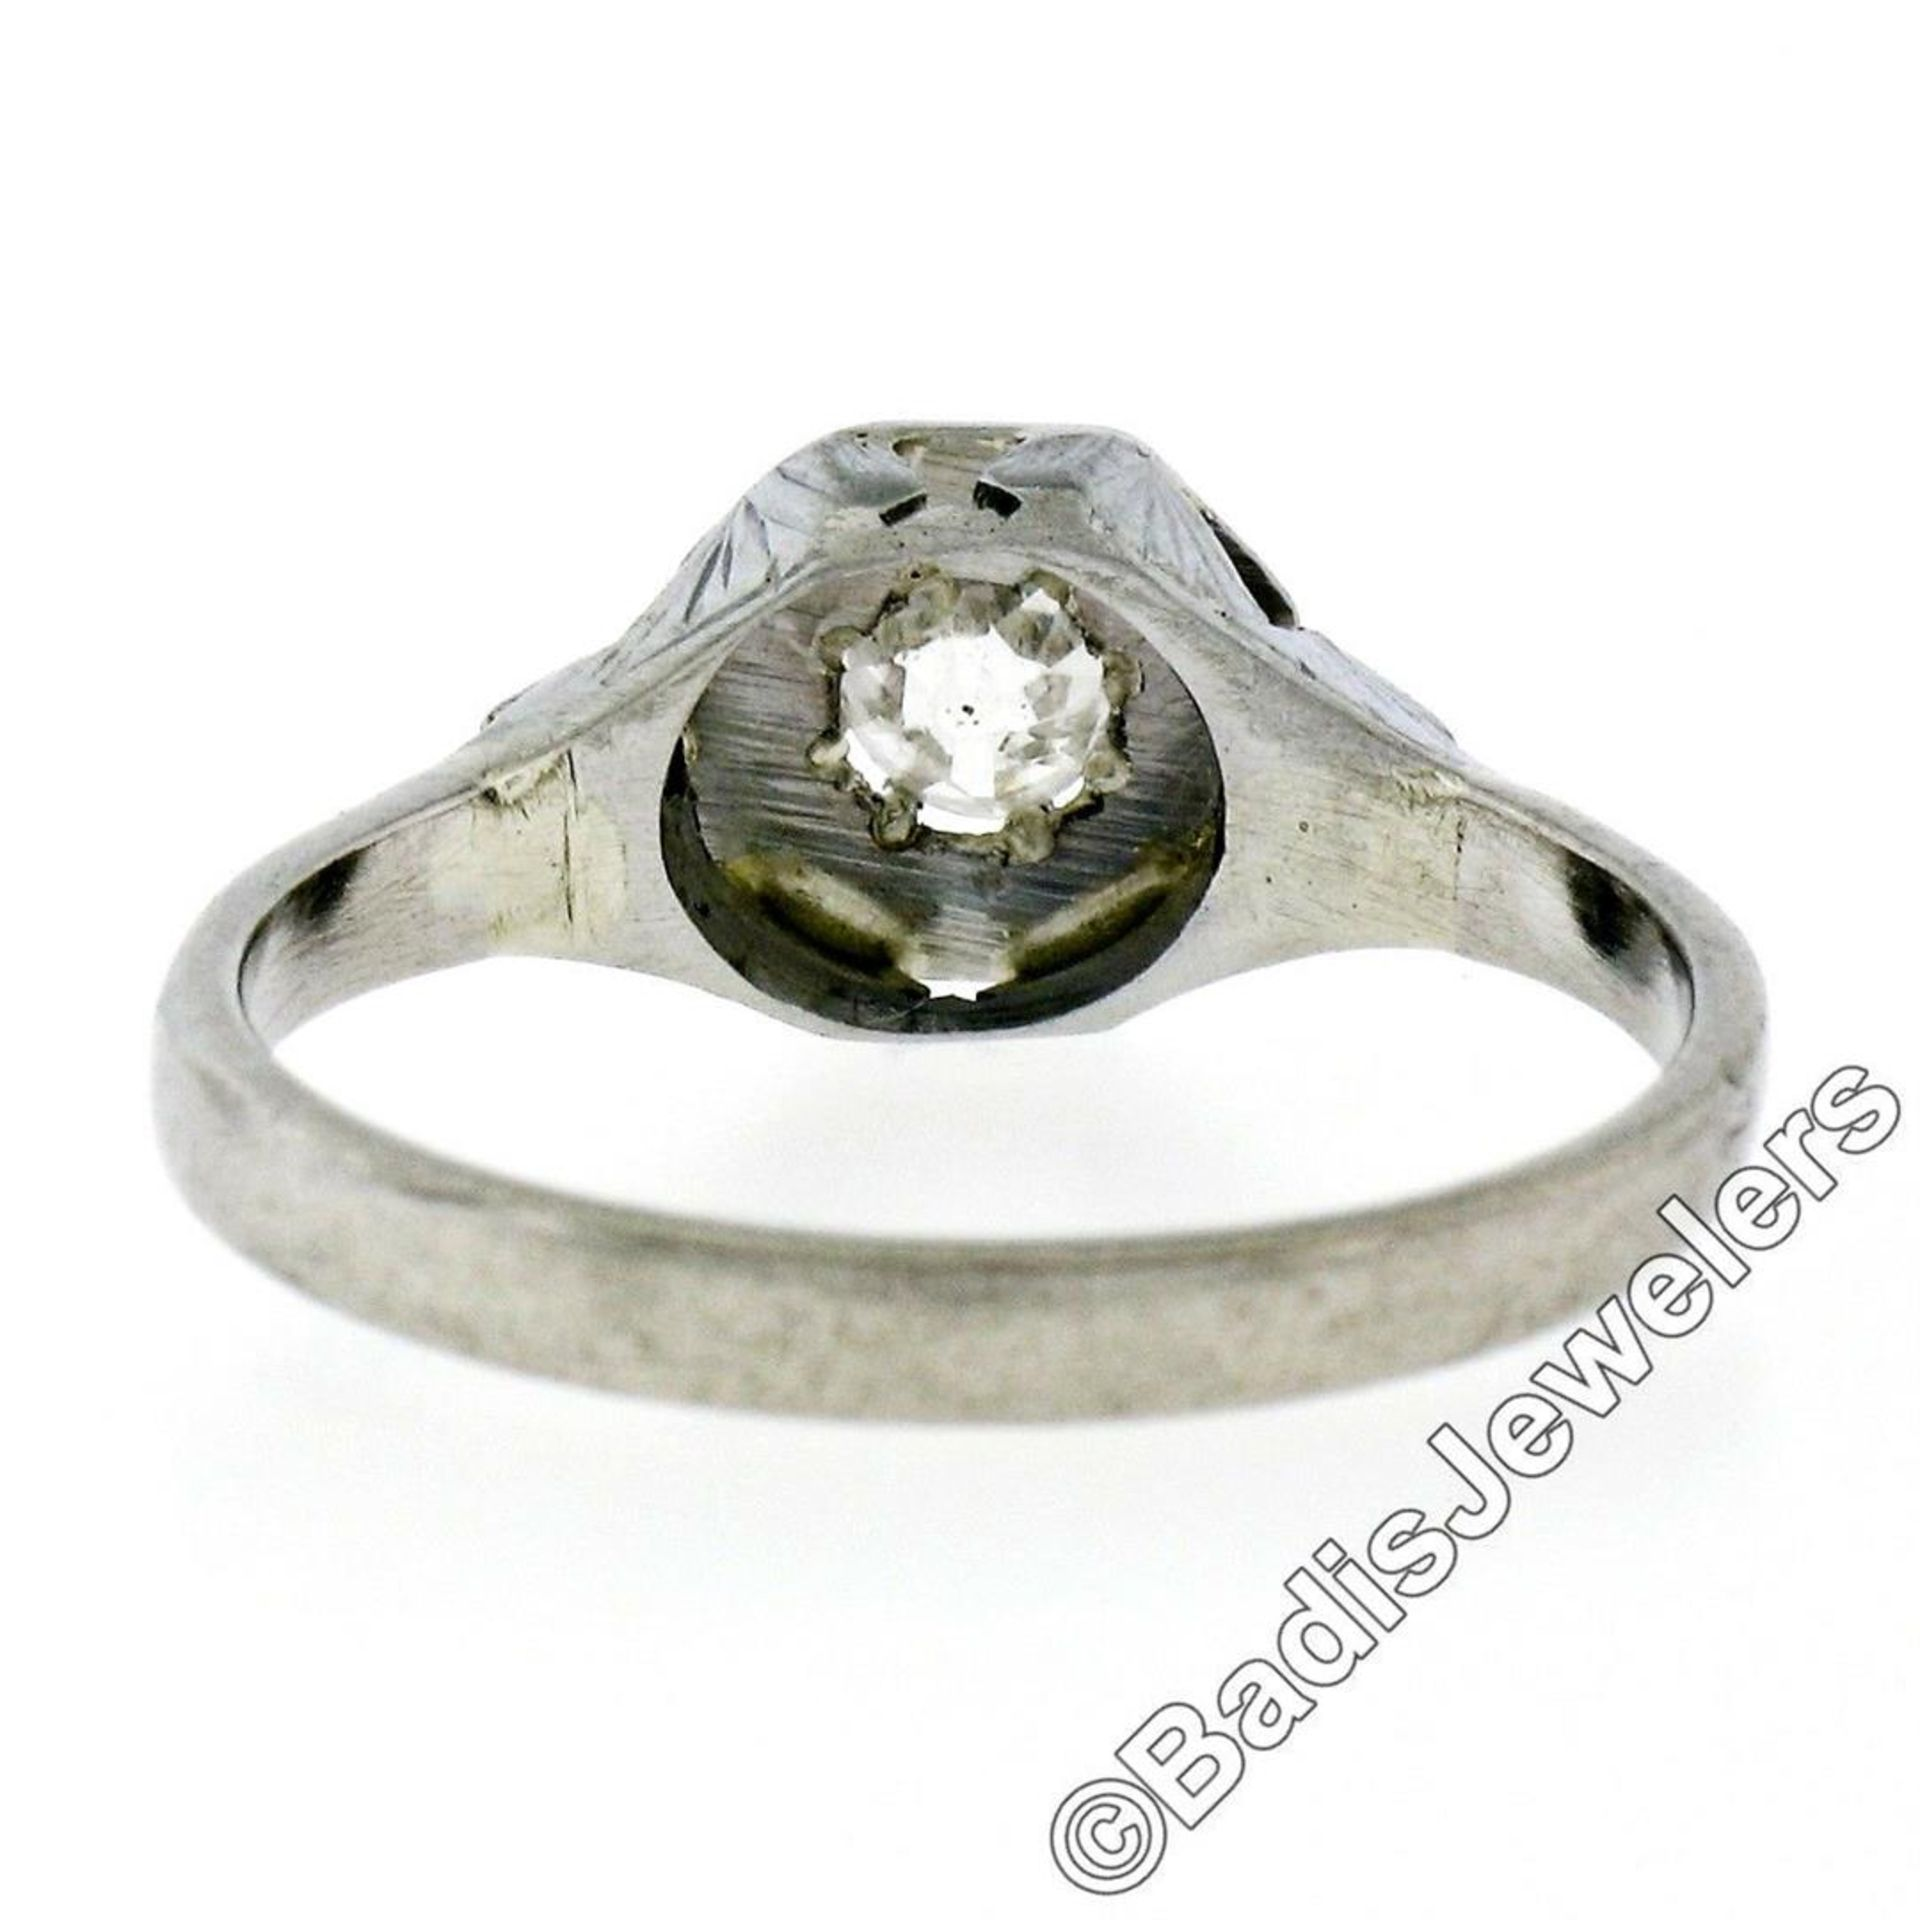 Art Deco 14kt White Gold 0.28ct Diamond Solitaire Engagement Ring - Image 7 of 7